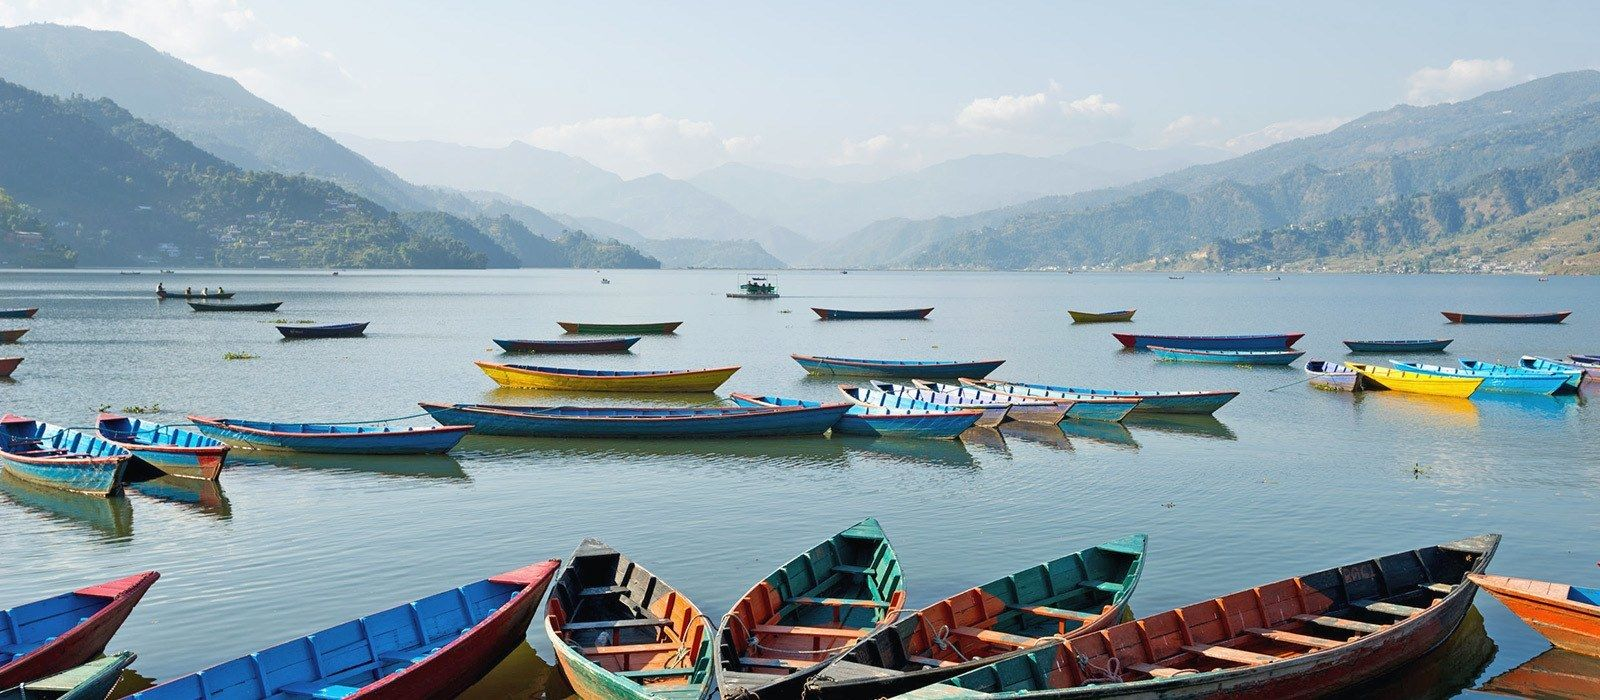 Destination Pokhara Nepal